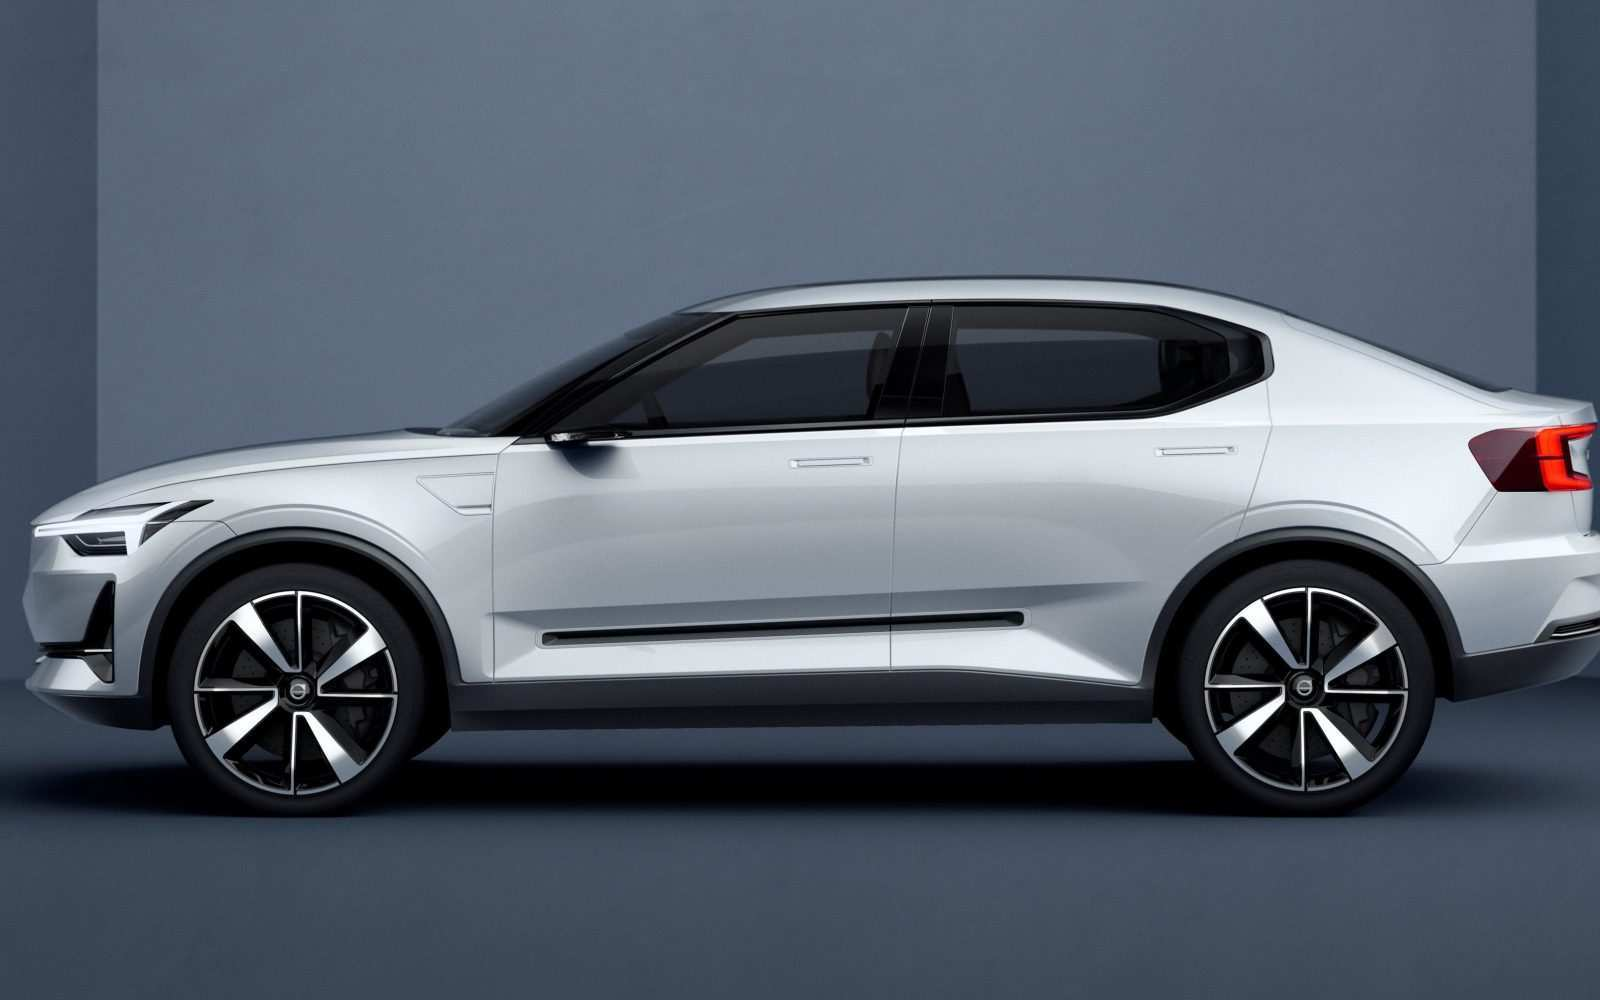 33 New Volvo All Electric Cars By 2019 Price Design And Review